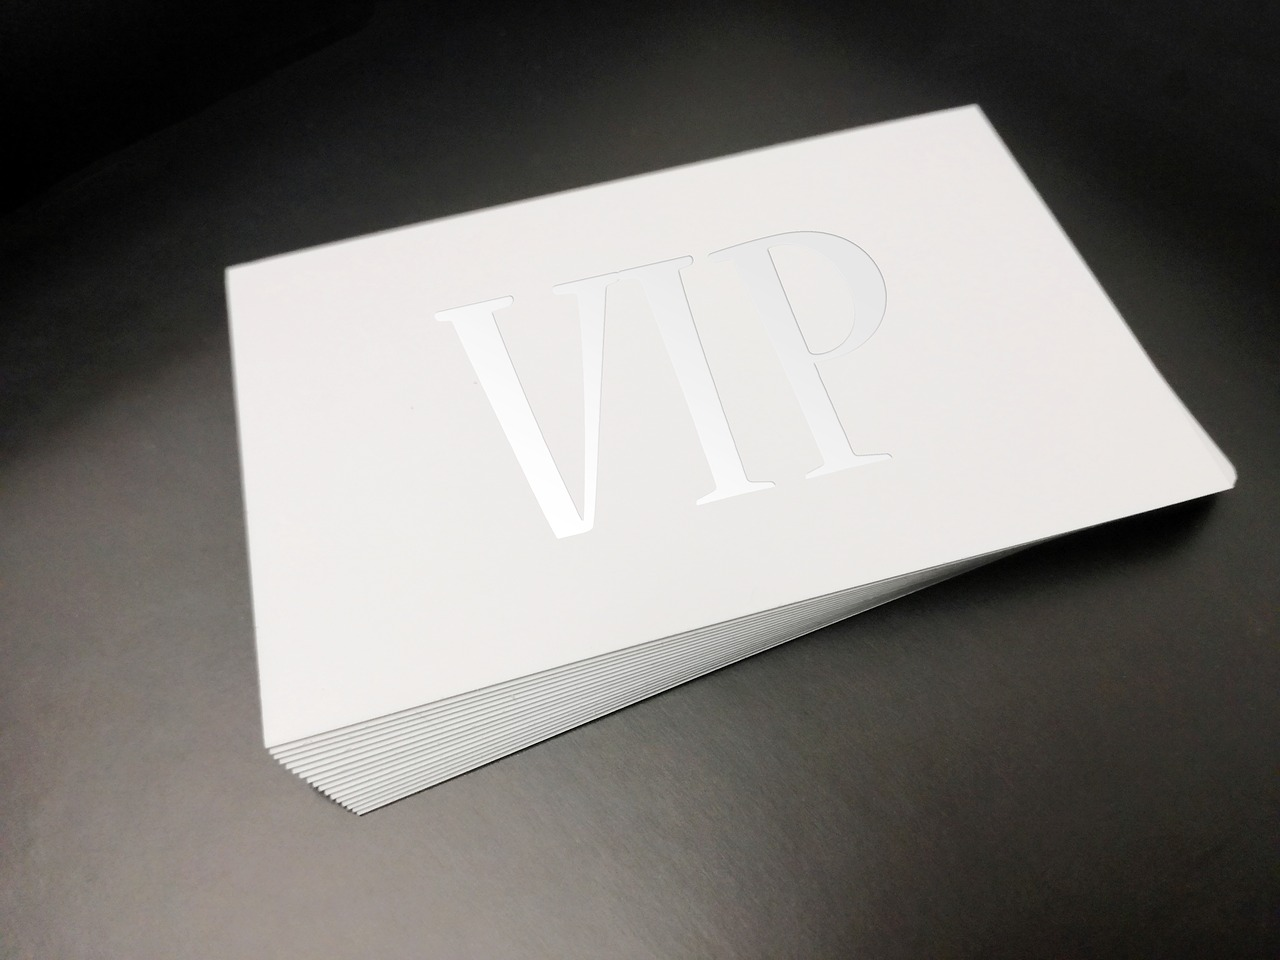 Show Your VIP Guests You Care With Upgraded Valet Service